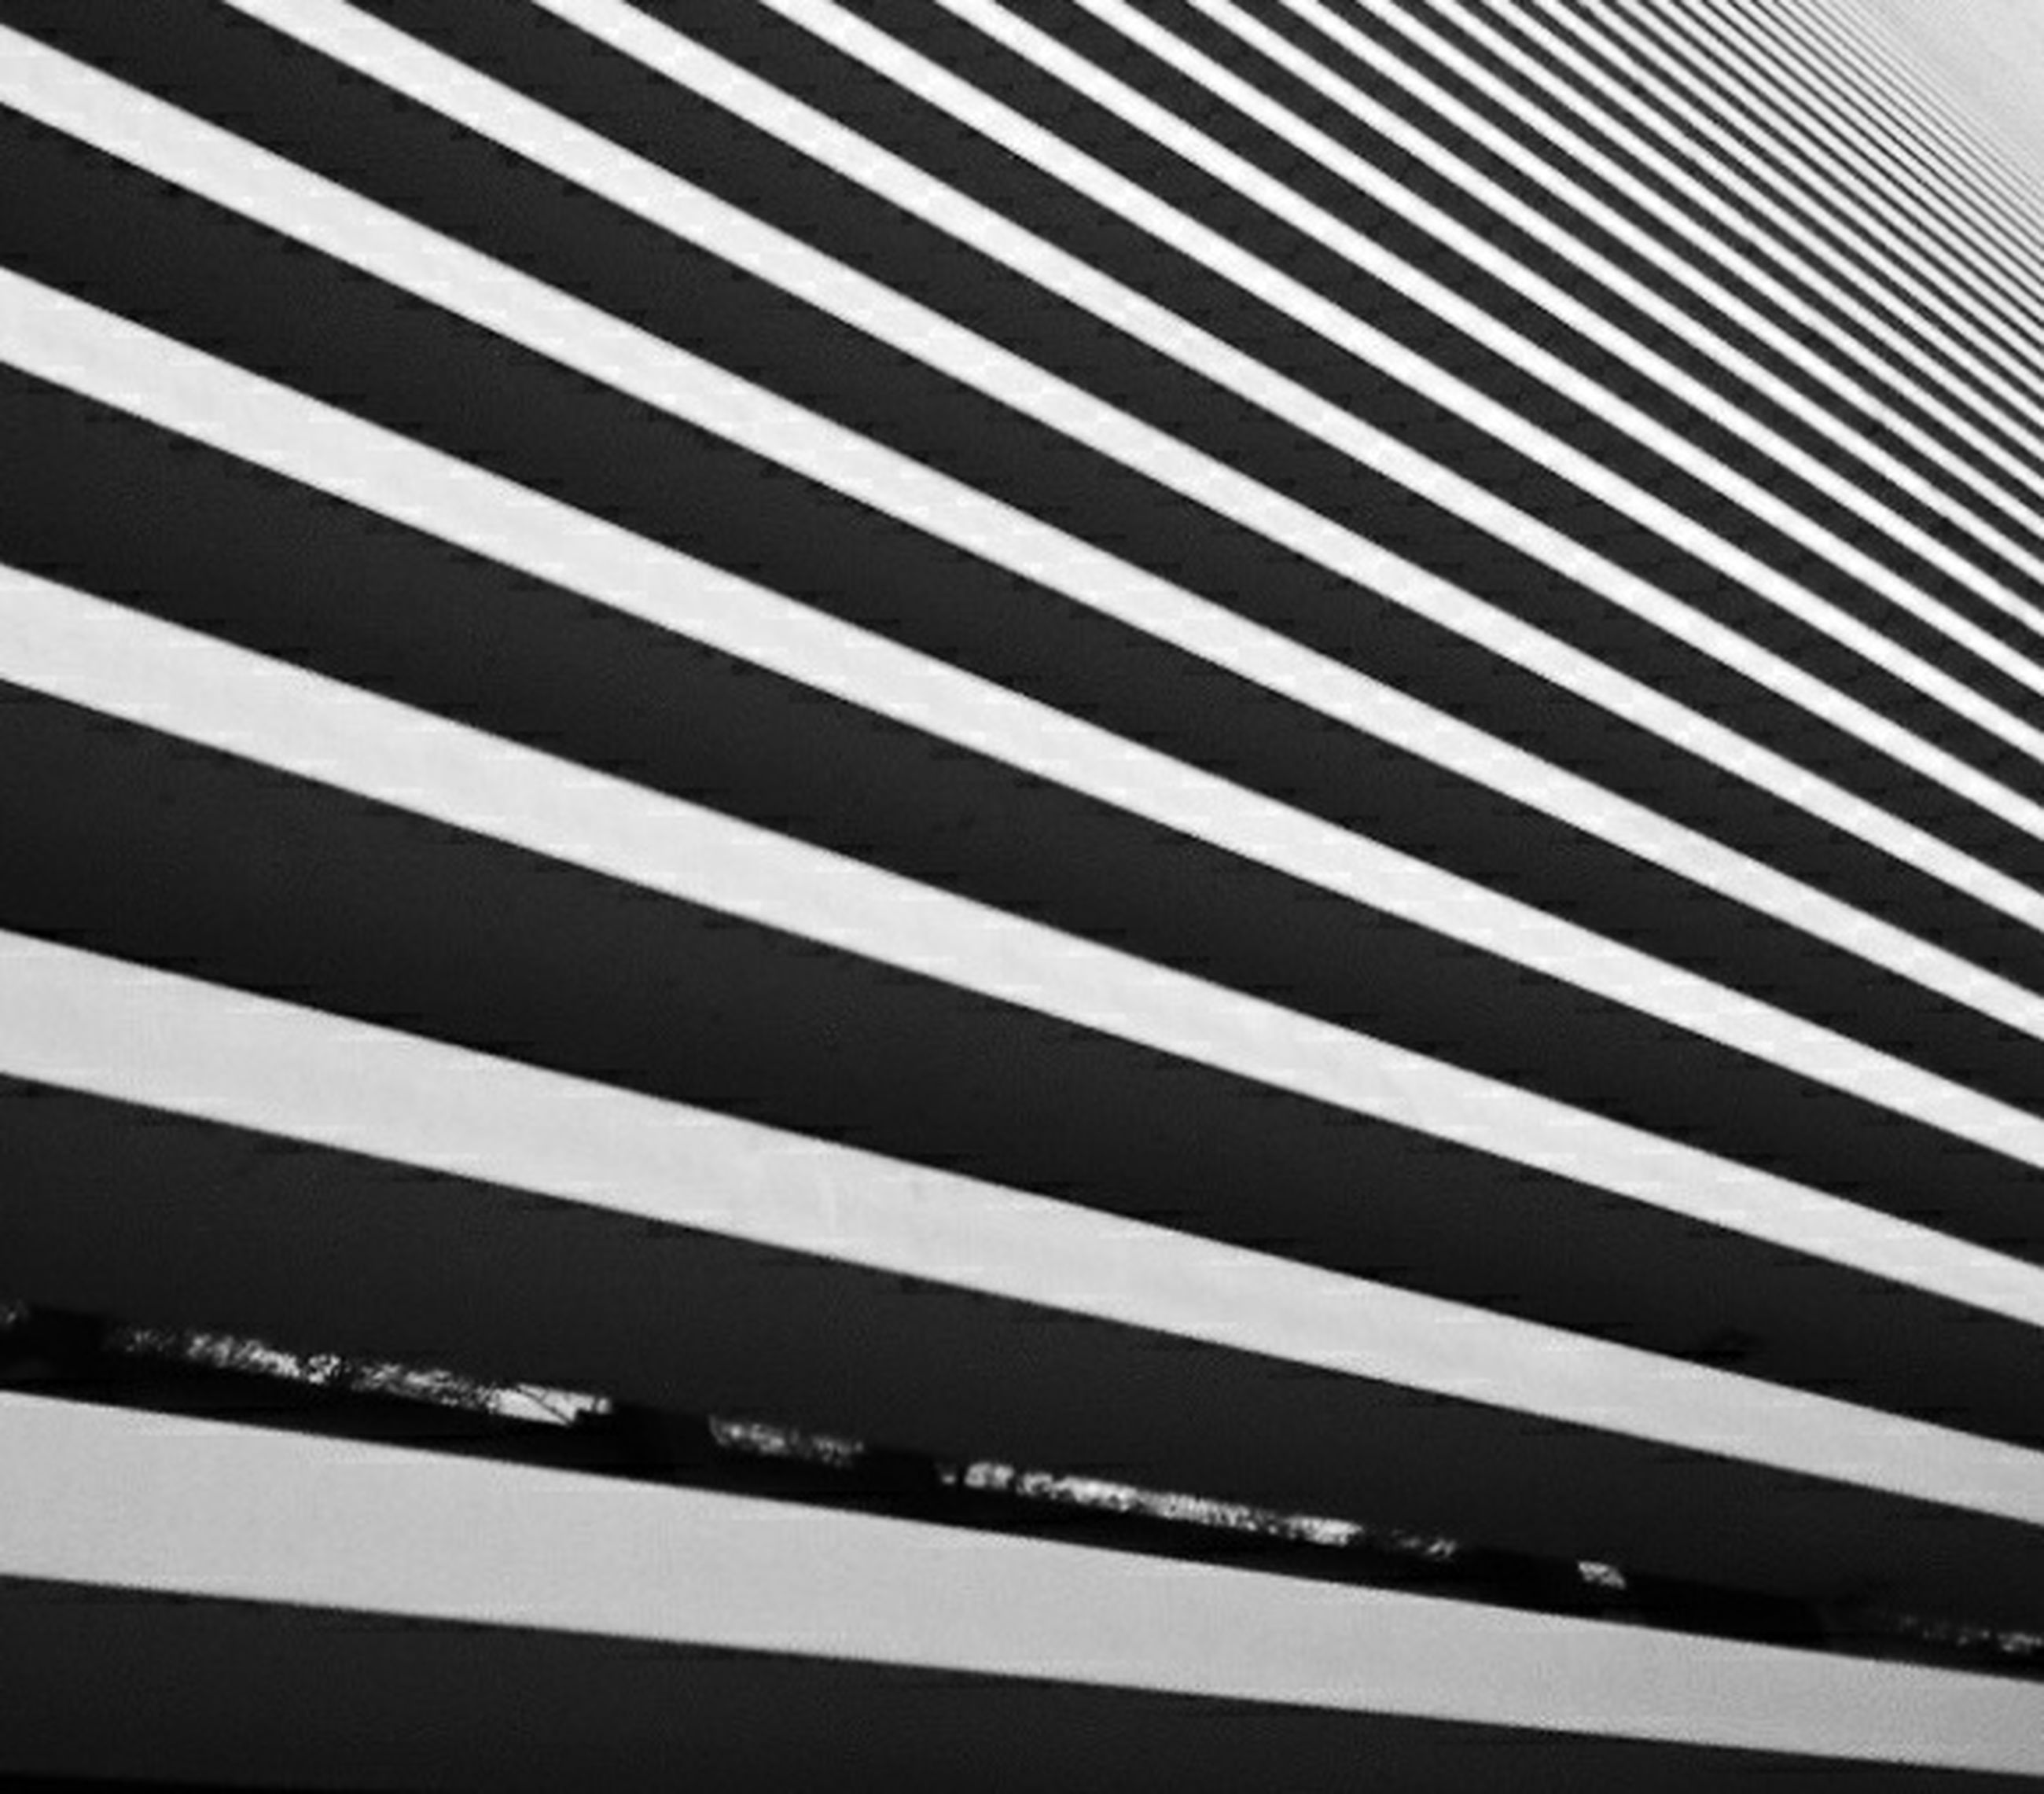 pattern, indoors, architecture, backgrounds, built structure, full frame, modern, low angle view, repetition, no people, striped, building exterior, design, in a row, building, day, city, white color, wall - building feature, high angle view